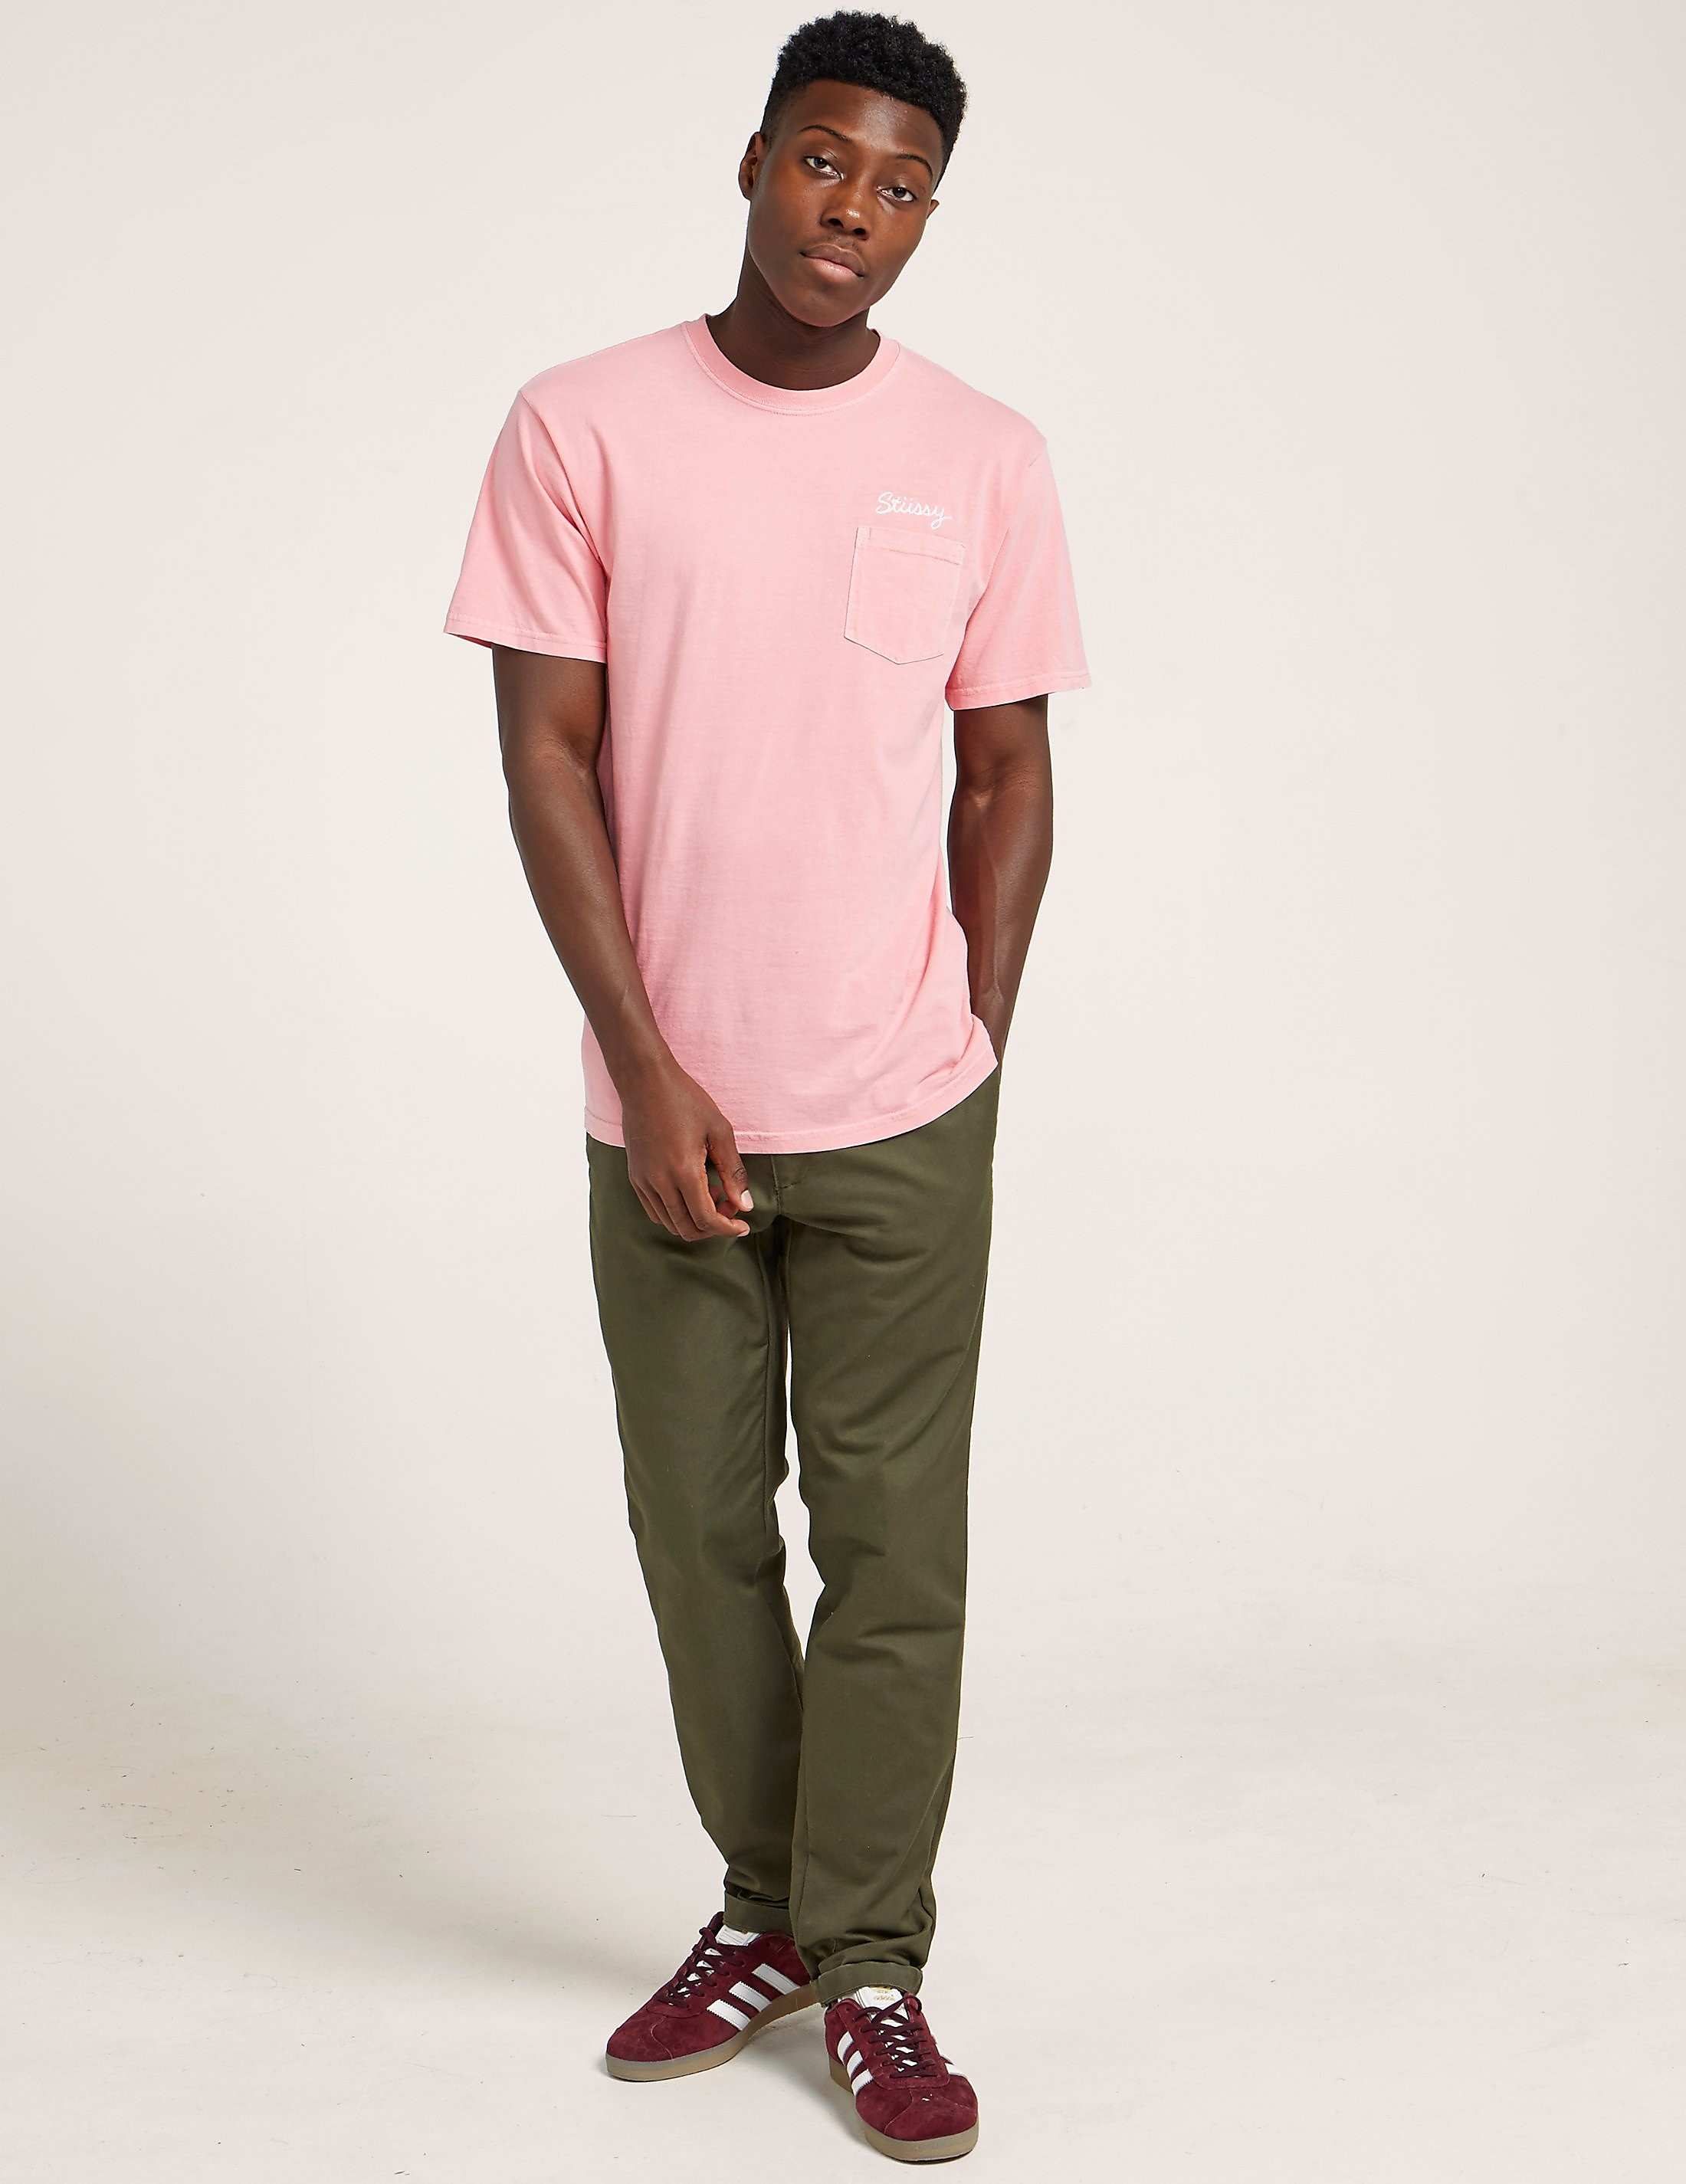 Stussy Stitch Dye Pocket Short Sleeve T-Shirt